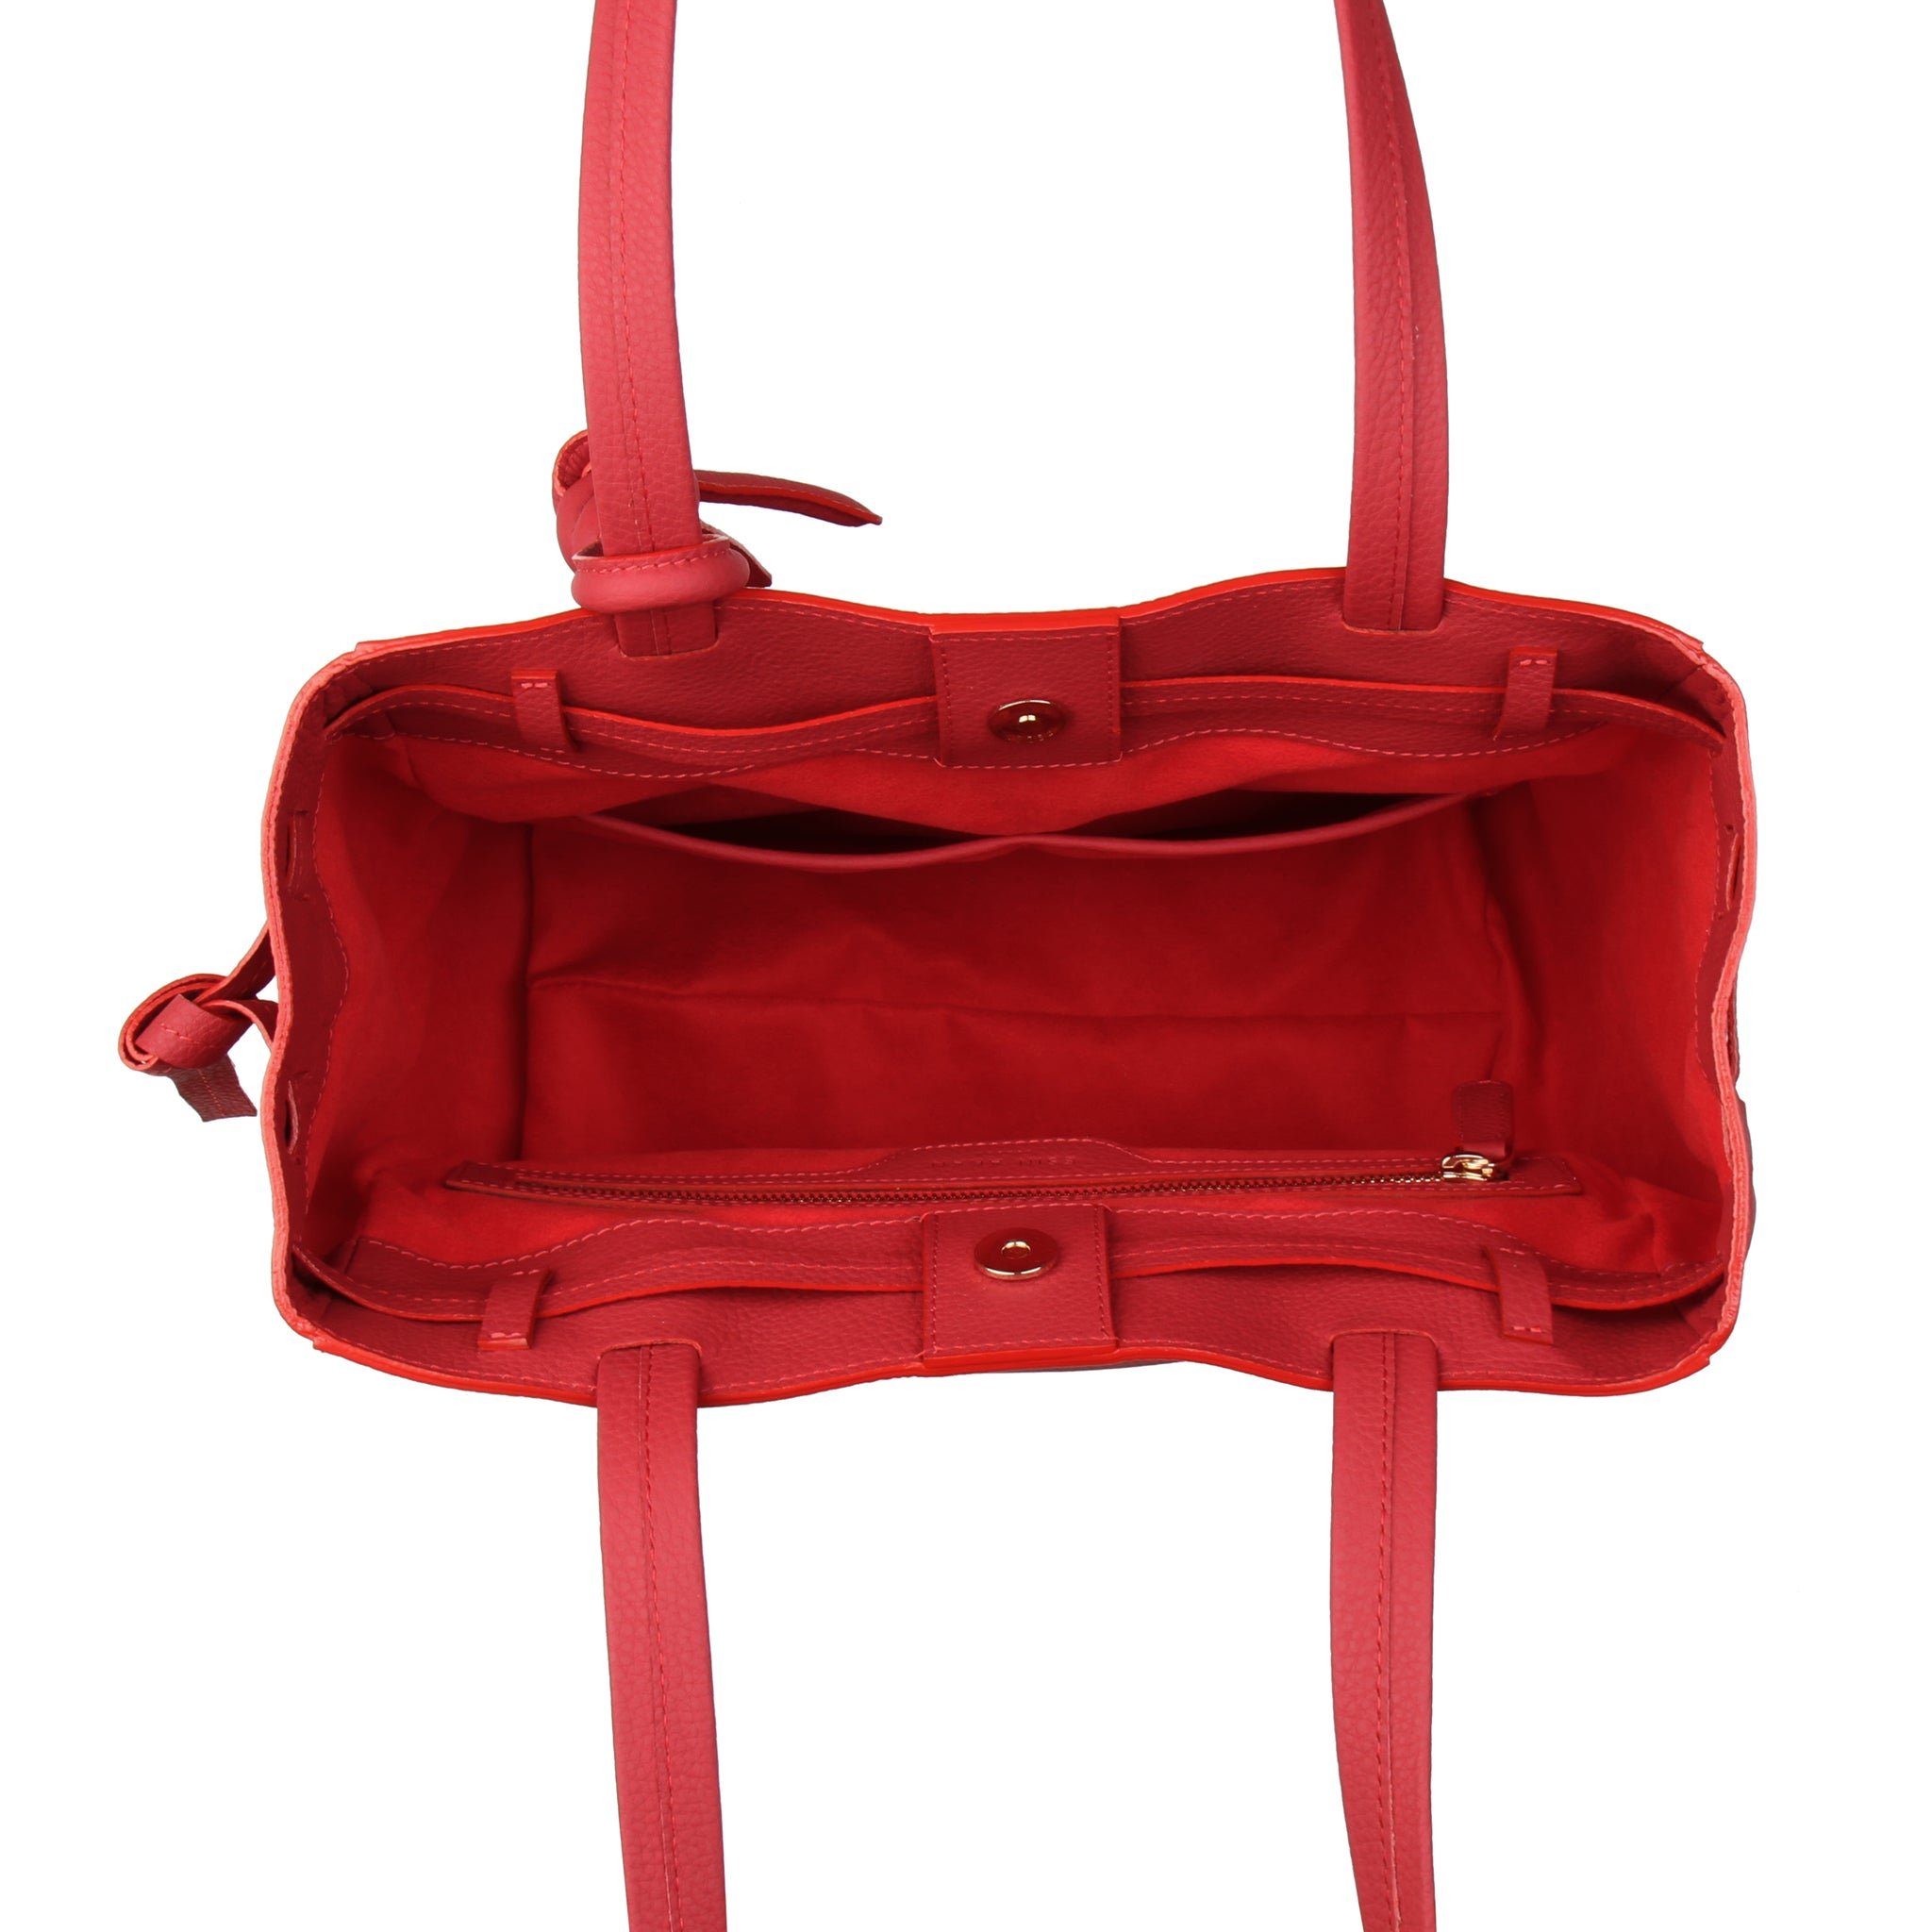 An expandable leather tote bag for women red, interior image.